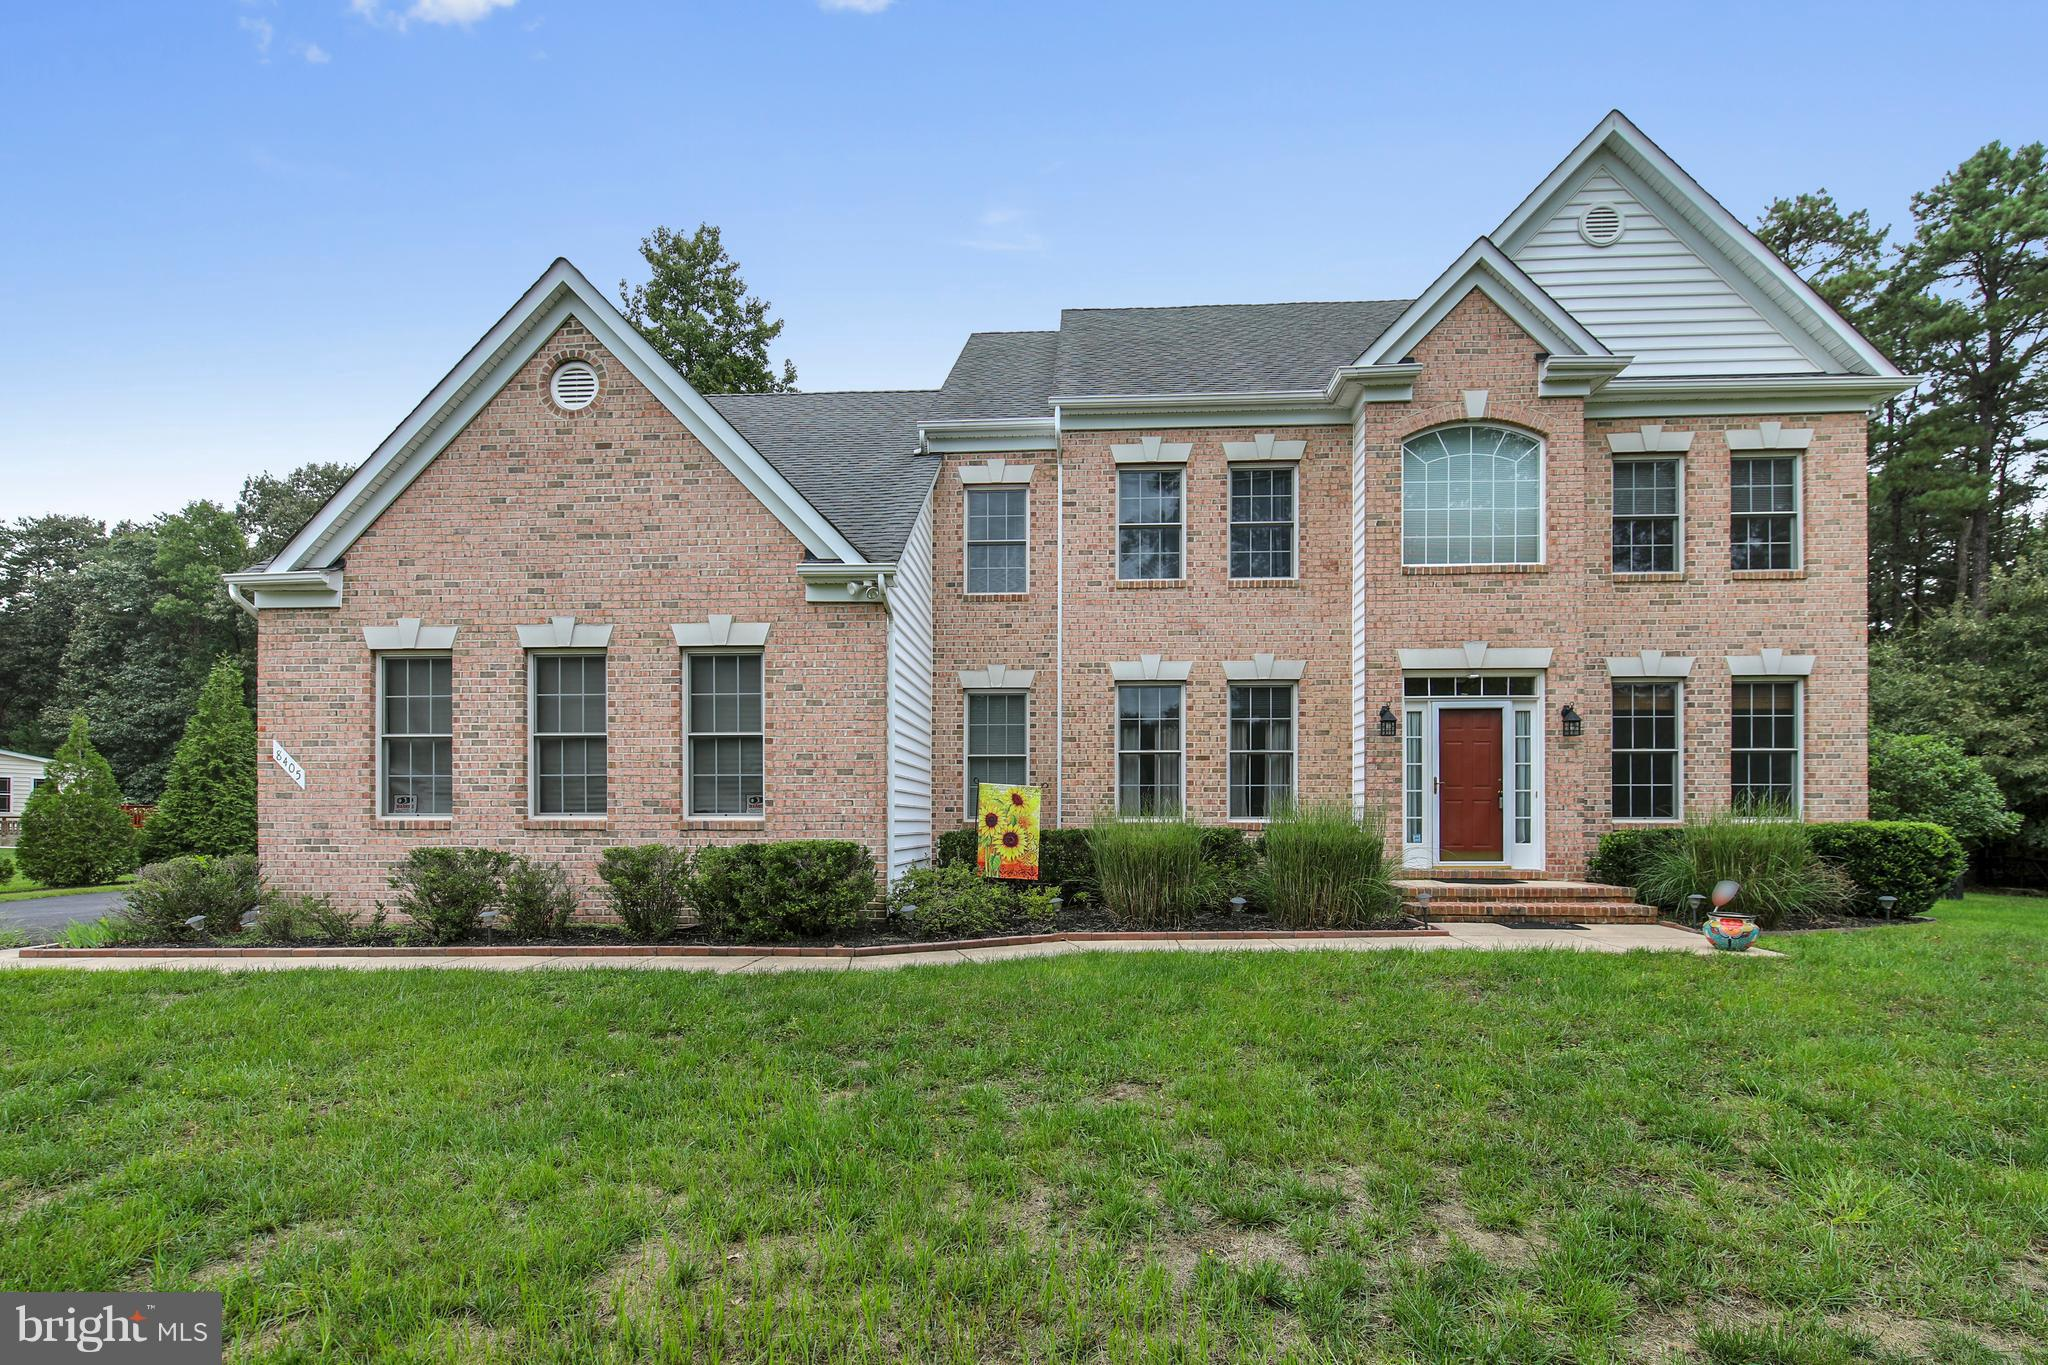 8405 TERRY LEE WAY, SEVERN, MD 21144